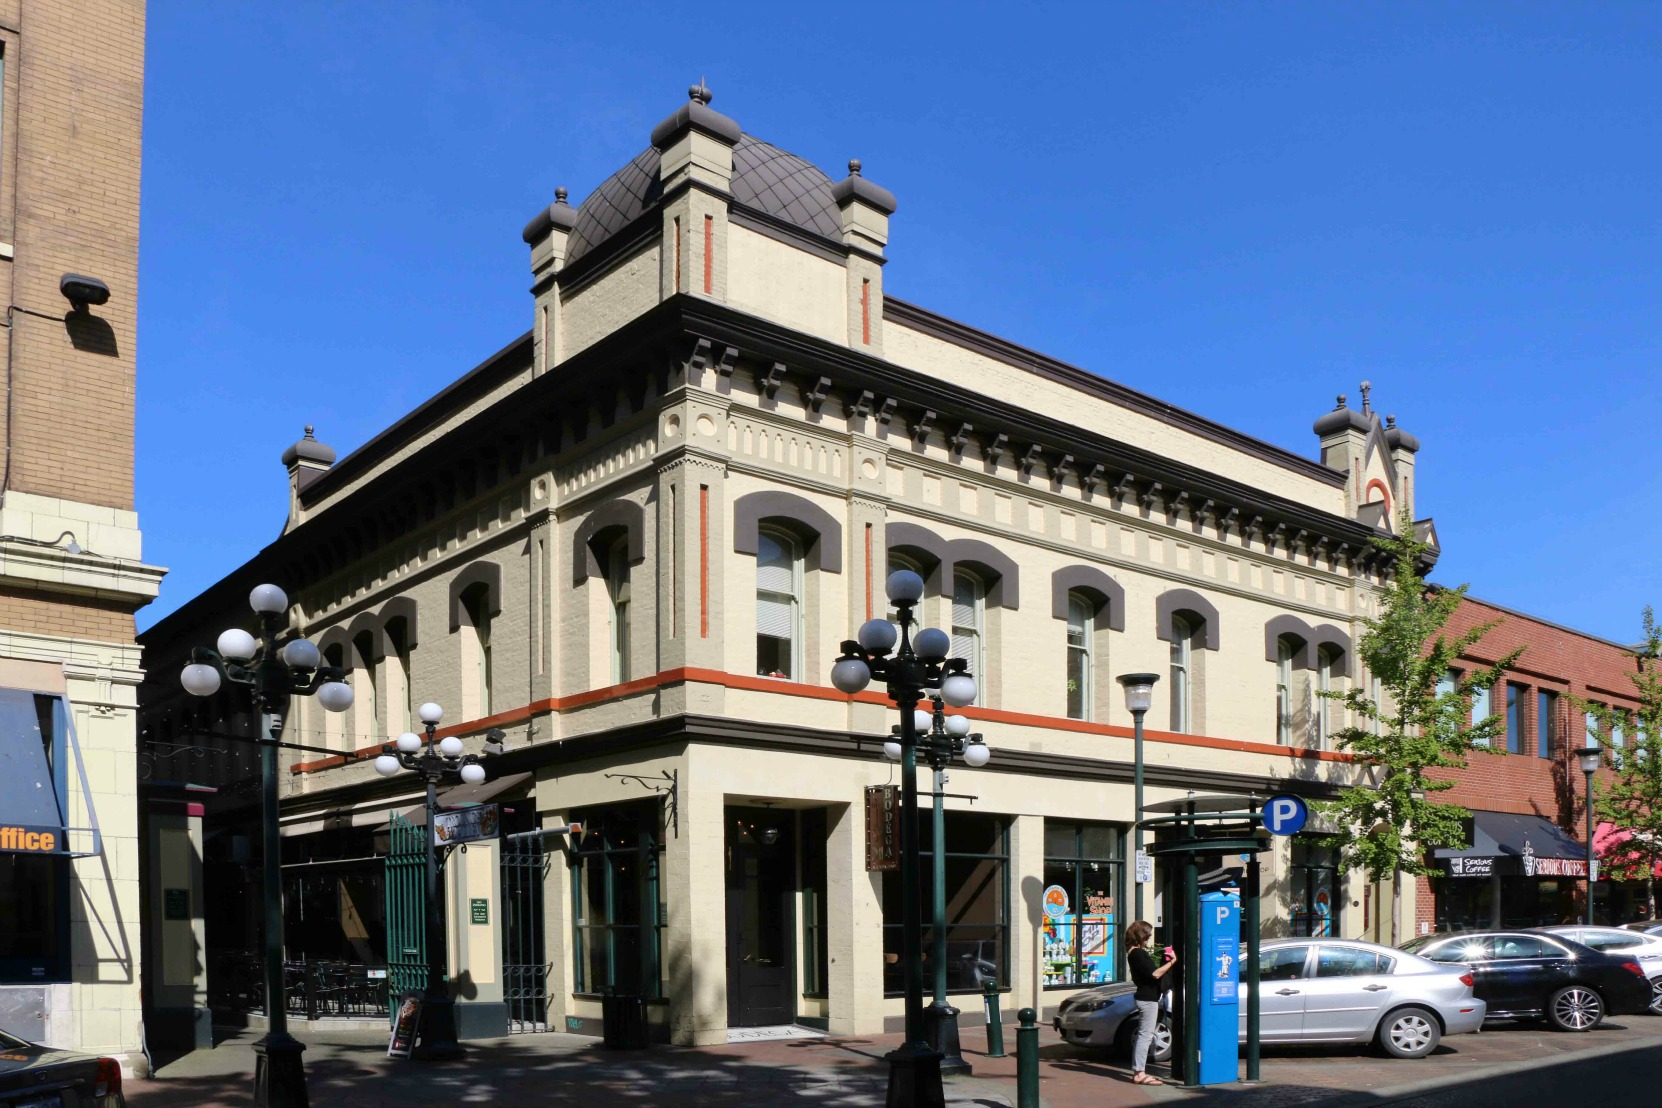 1210-1216 Broad Street, Victoria. Built in 1889 by architect Thomas Trounce for Alexander Alfred Green